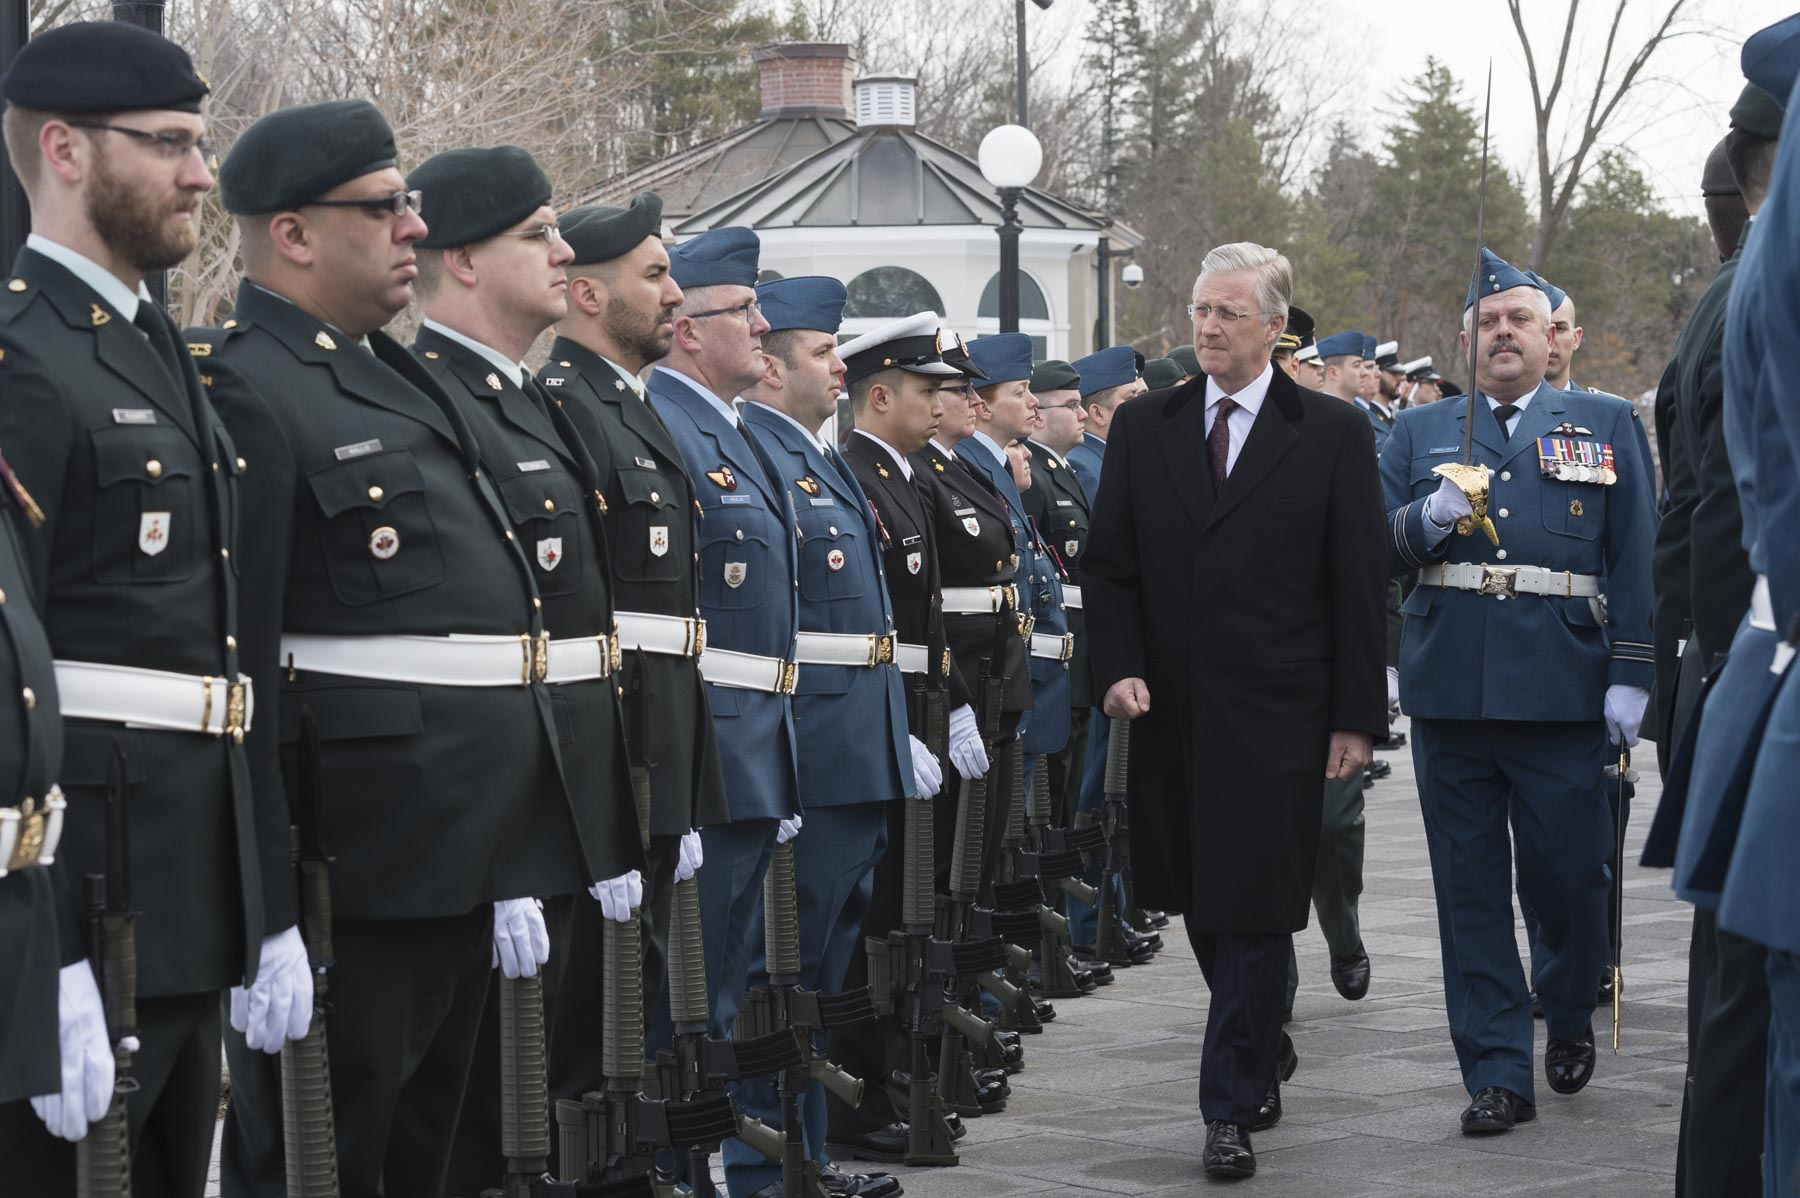 His Majesty then proceeded with the inspected a guard of honour of members of the Canadian Armed Forces.